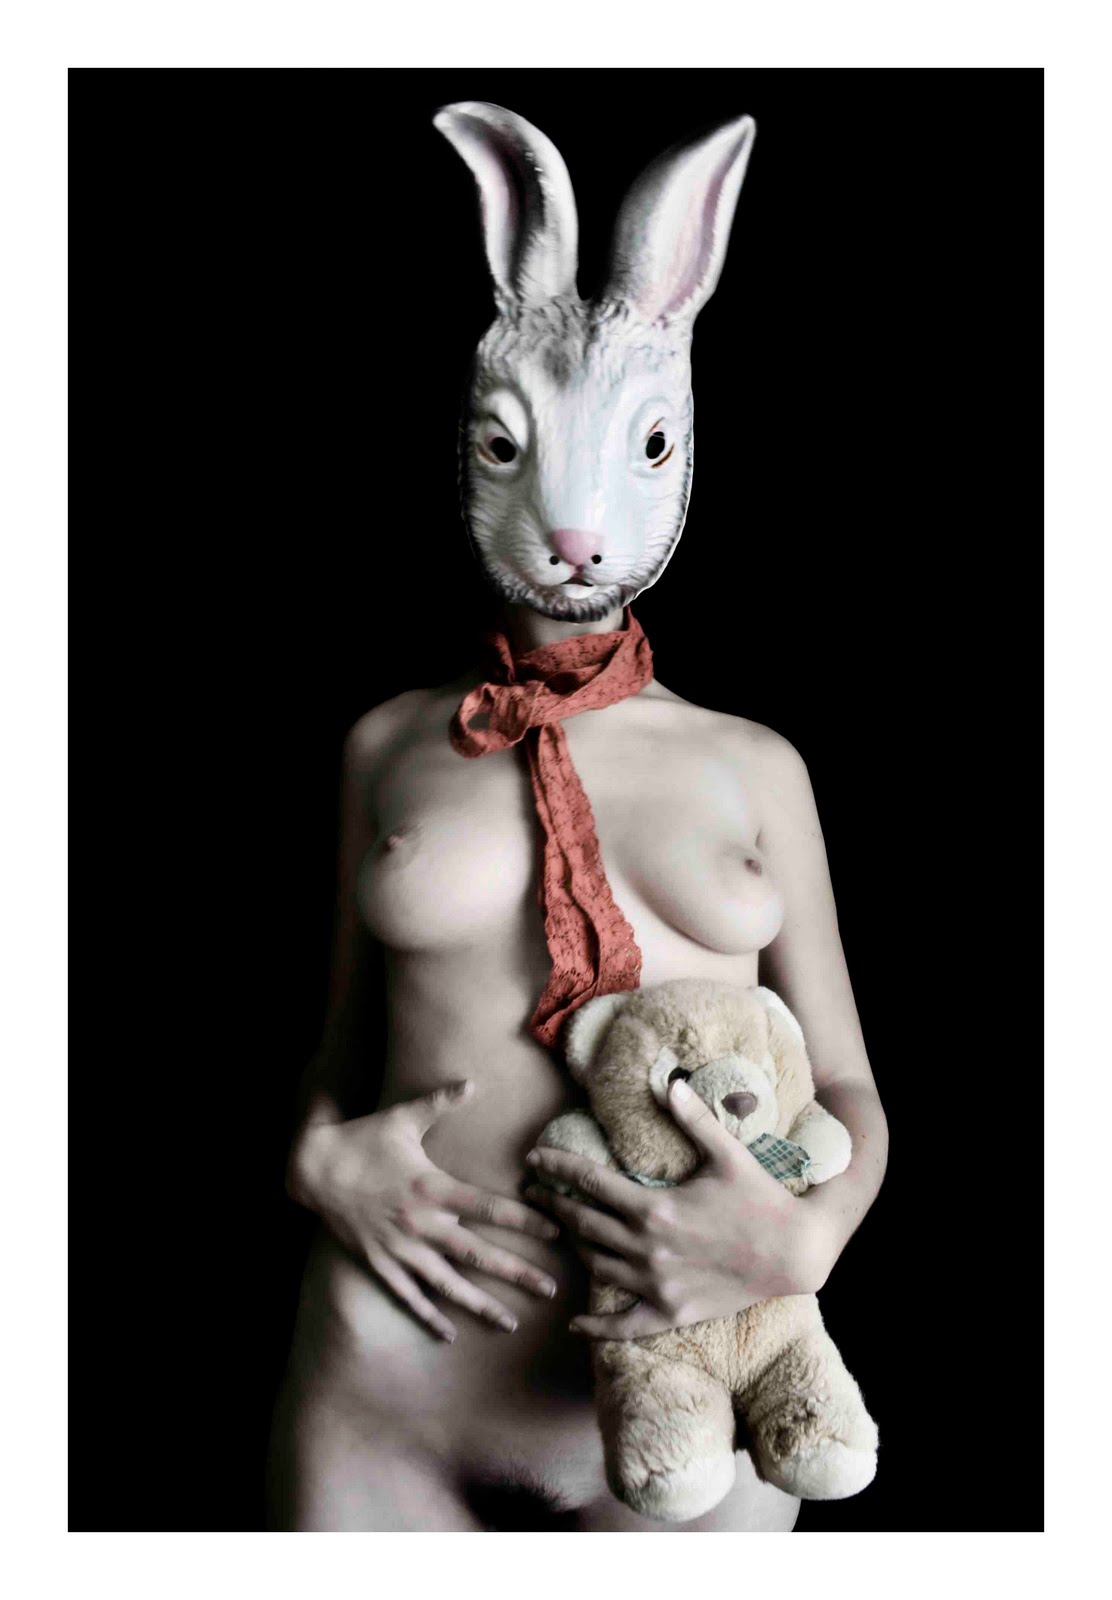 bunny%252B3 Labels: Fine Art, Nude